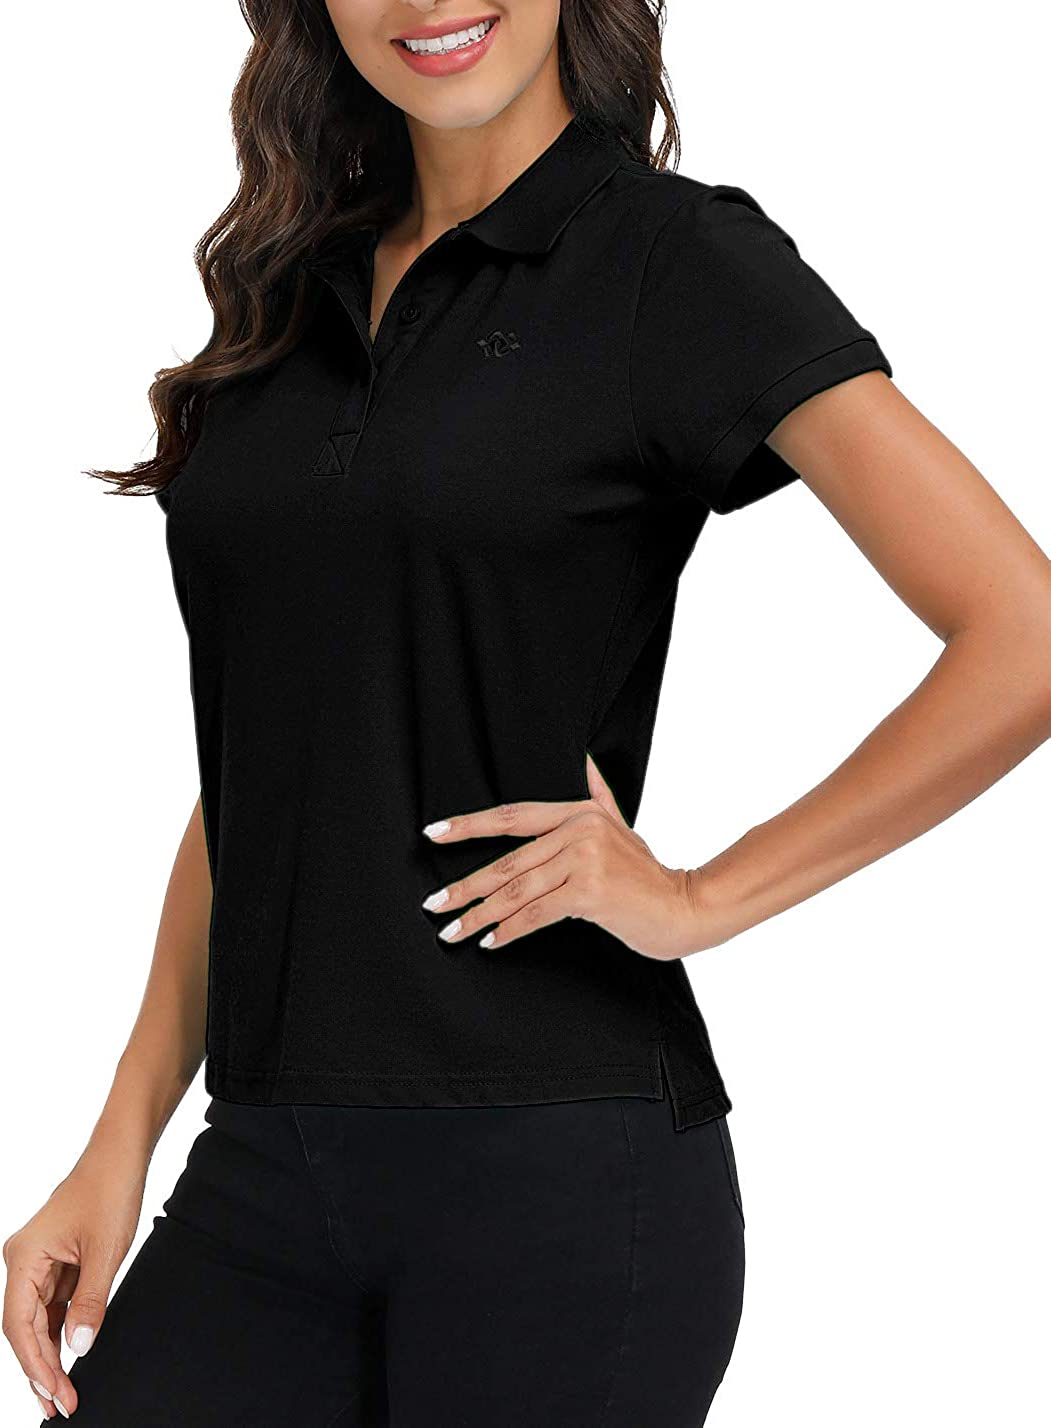 AjezMax Womens Polo Shirt Golf Sport Short Basic Quick Dry Shirt Casual : Clothing, Shoes & Jewelry